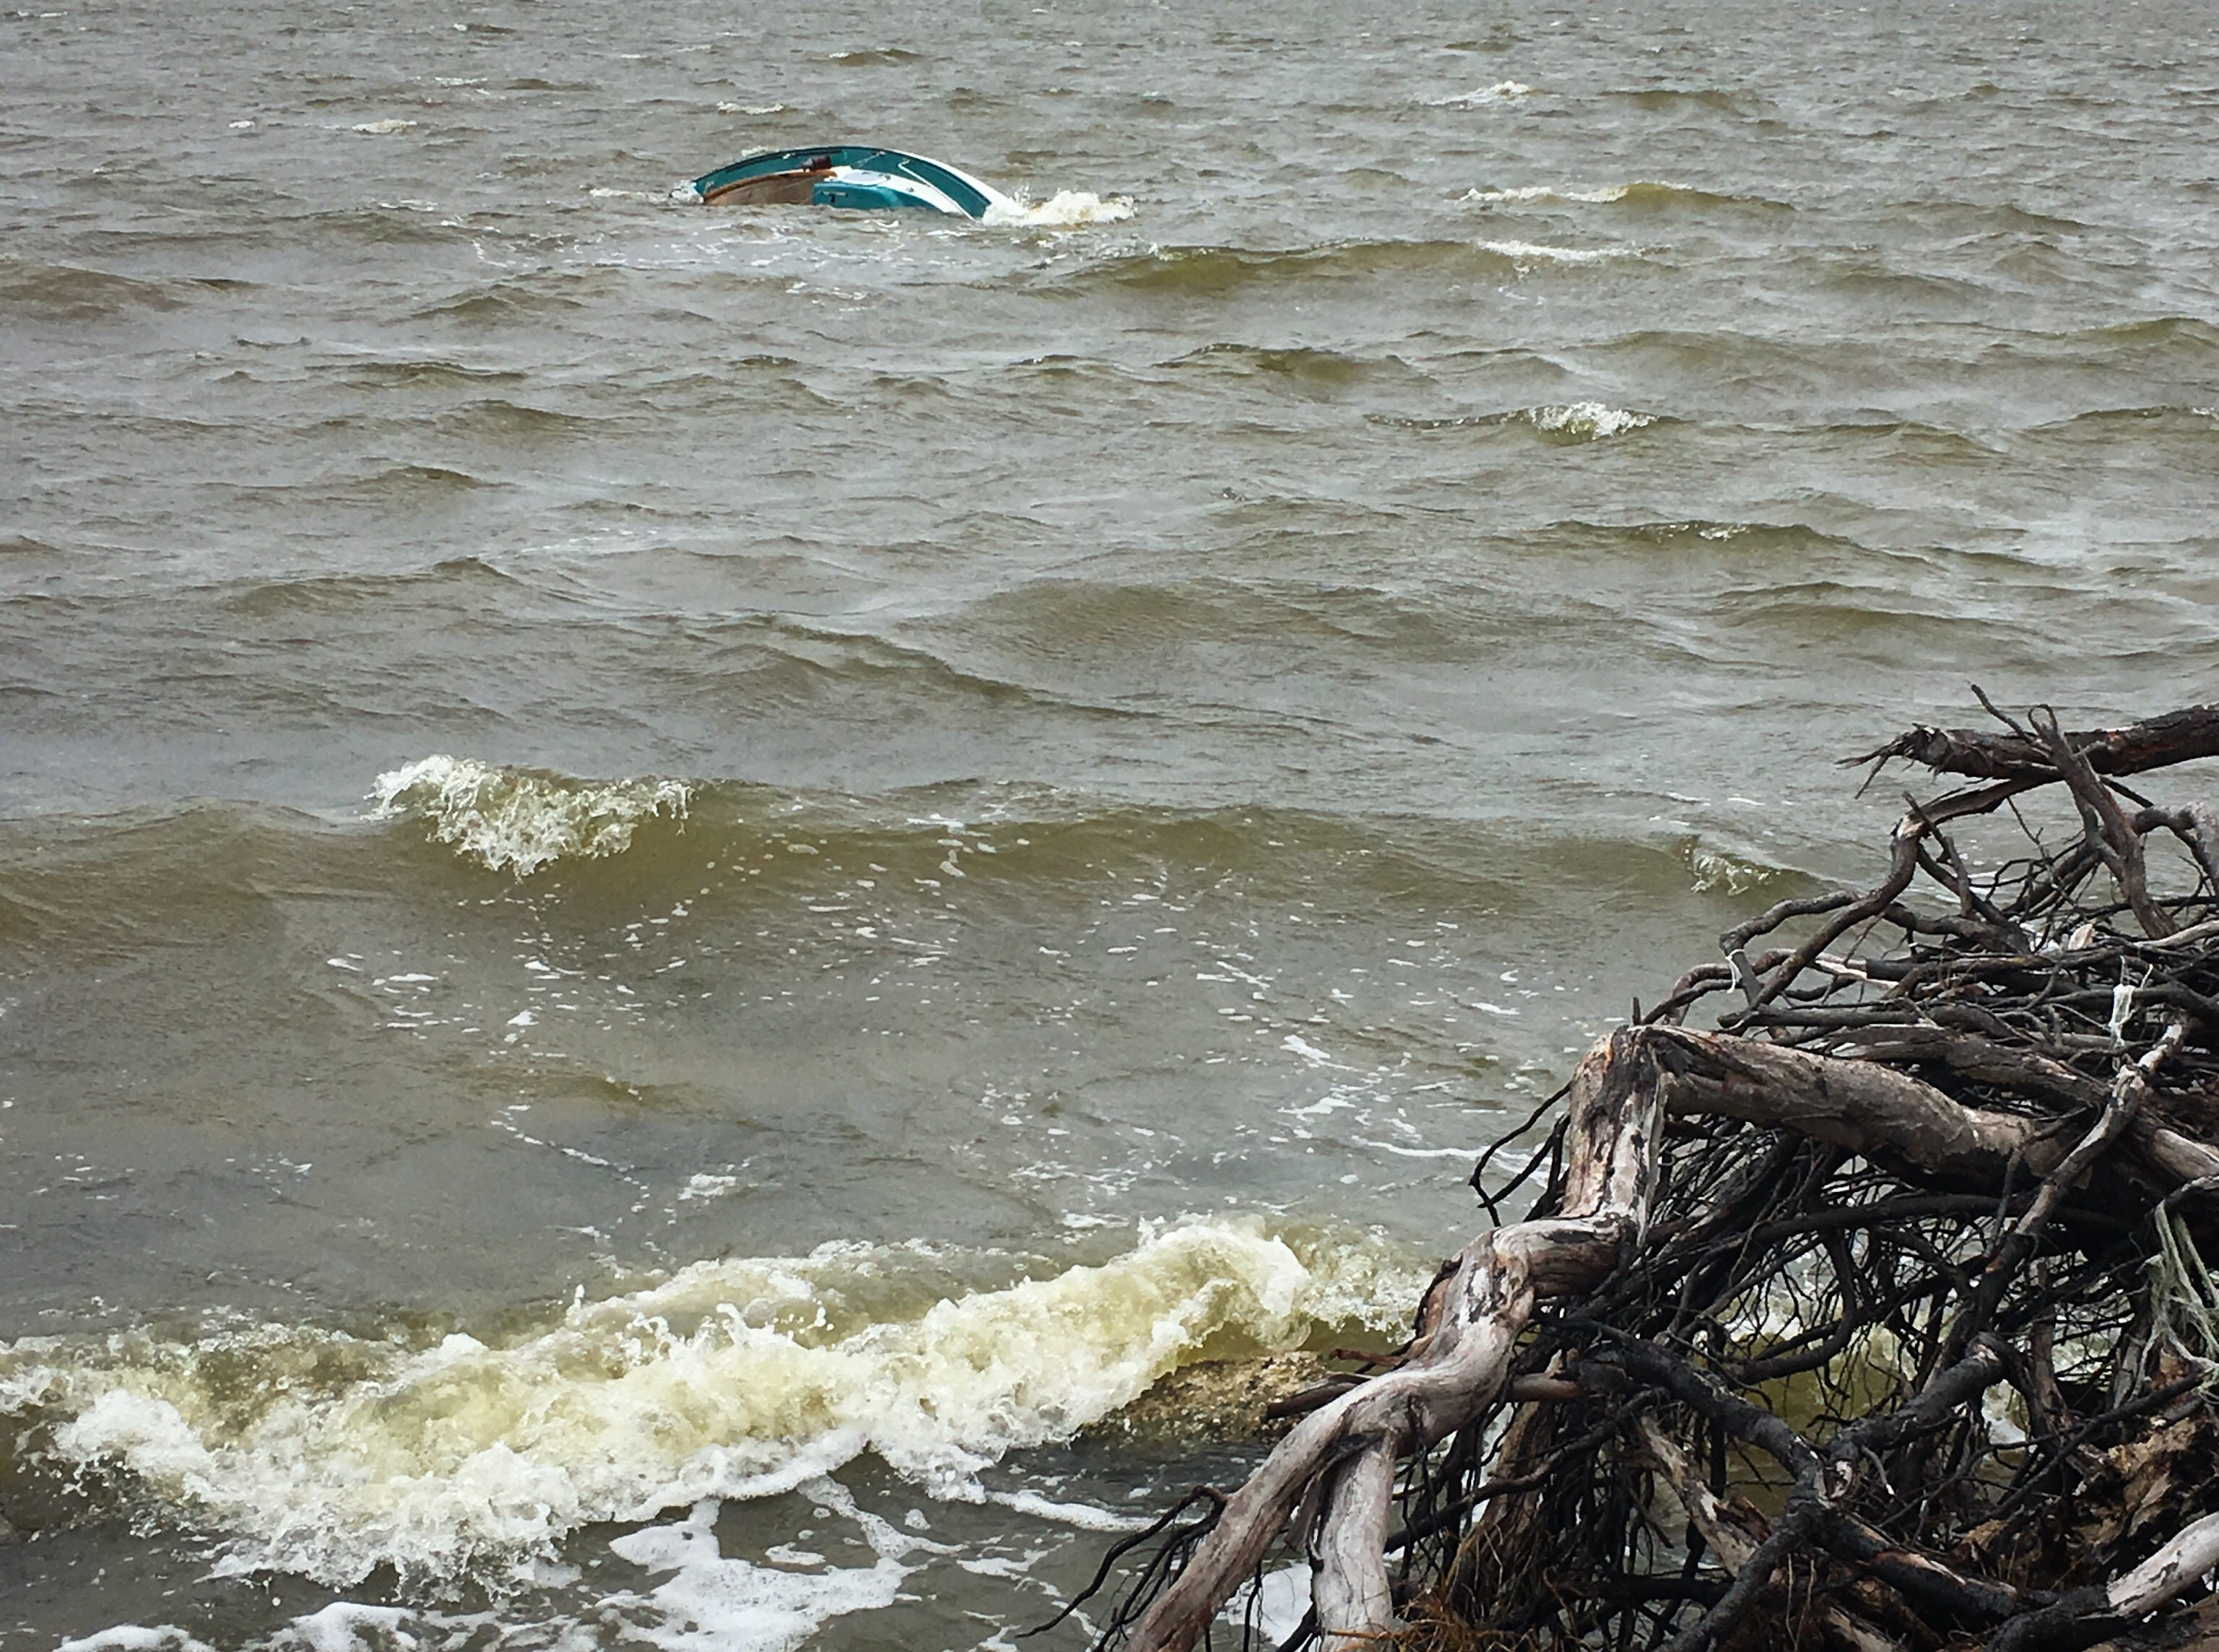 Four people managed to make it to shore Sunday, April 14, 2019, after a 20-foot boat capsized in the Banana River.